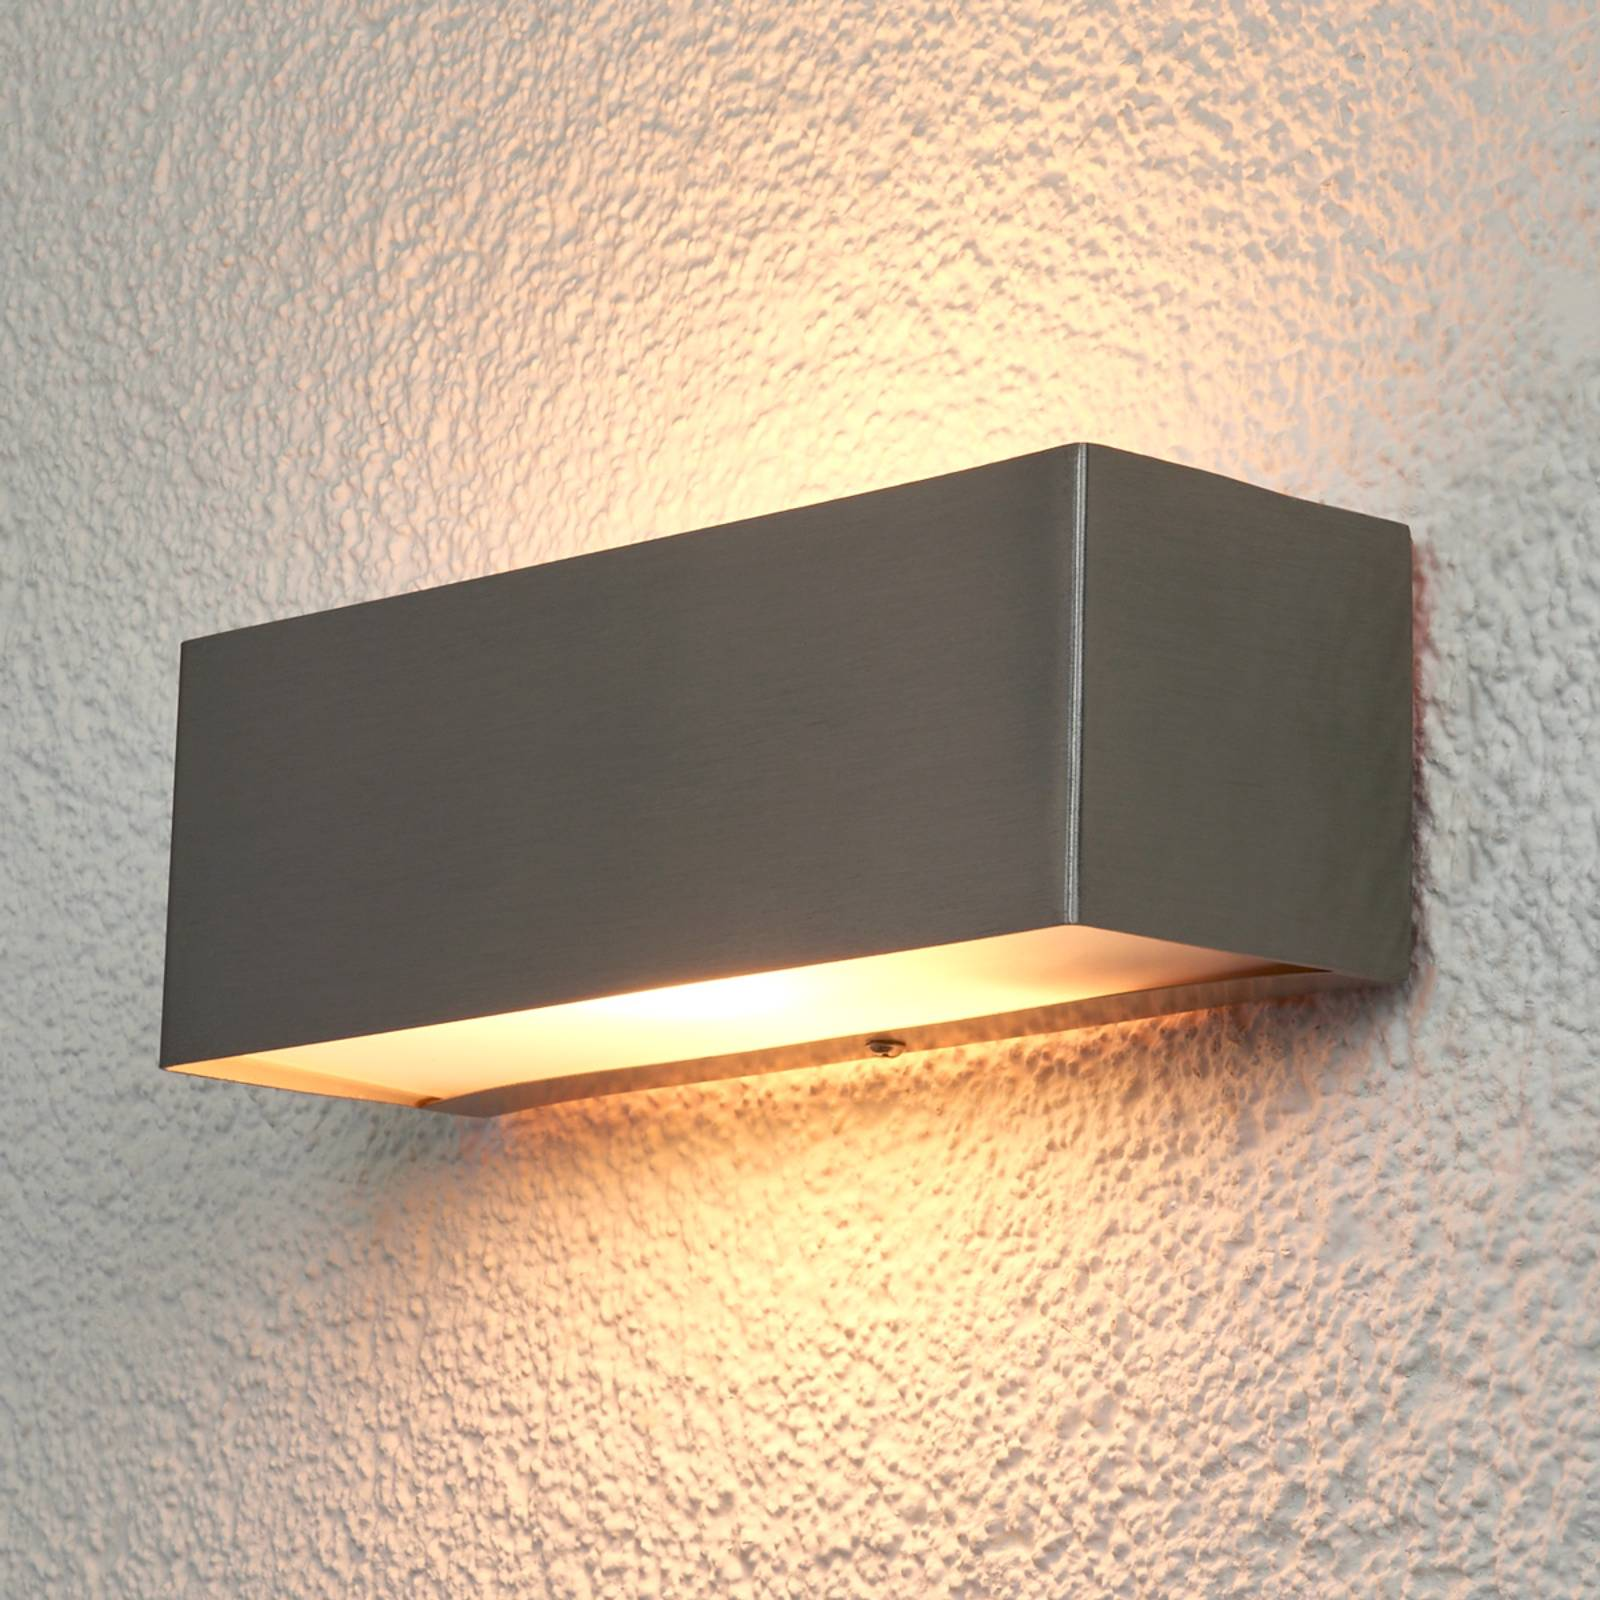 Rectangular wall lamp Alicia for outdoors from Lindby